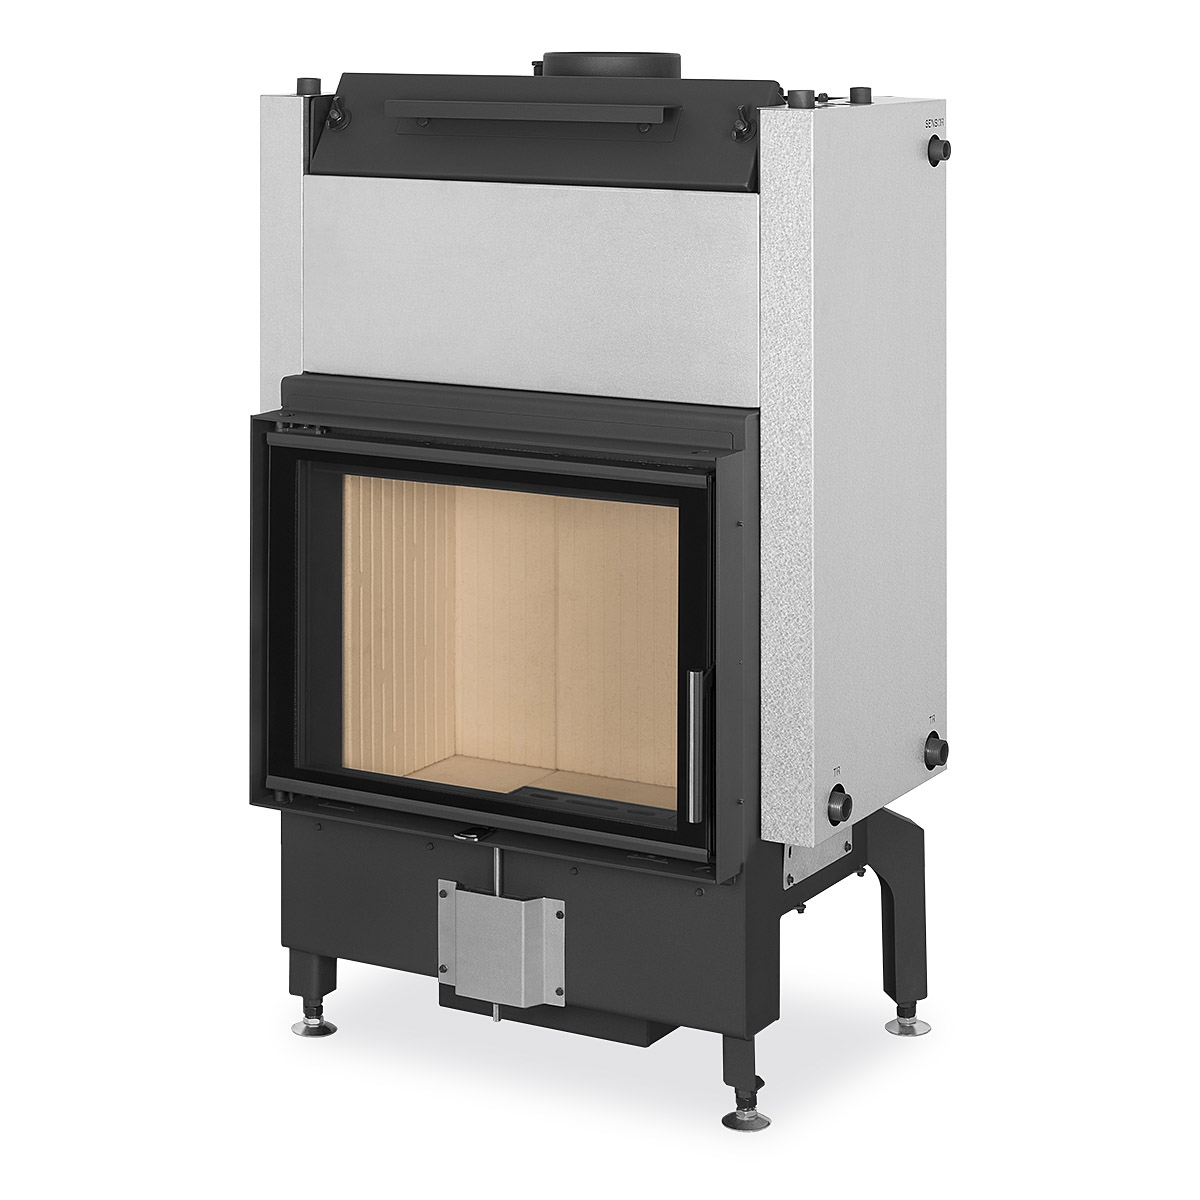 Insert Double Combustion Dynamic W 2g 66 50 01 Fireplace Insert With Double Glazing And